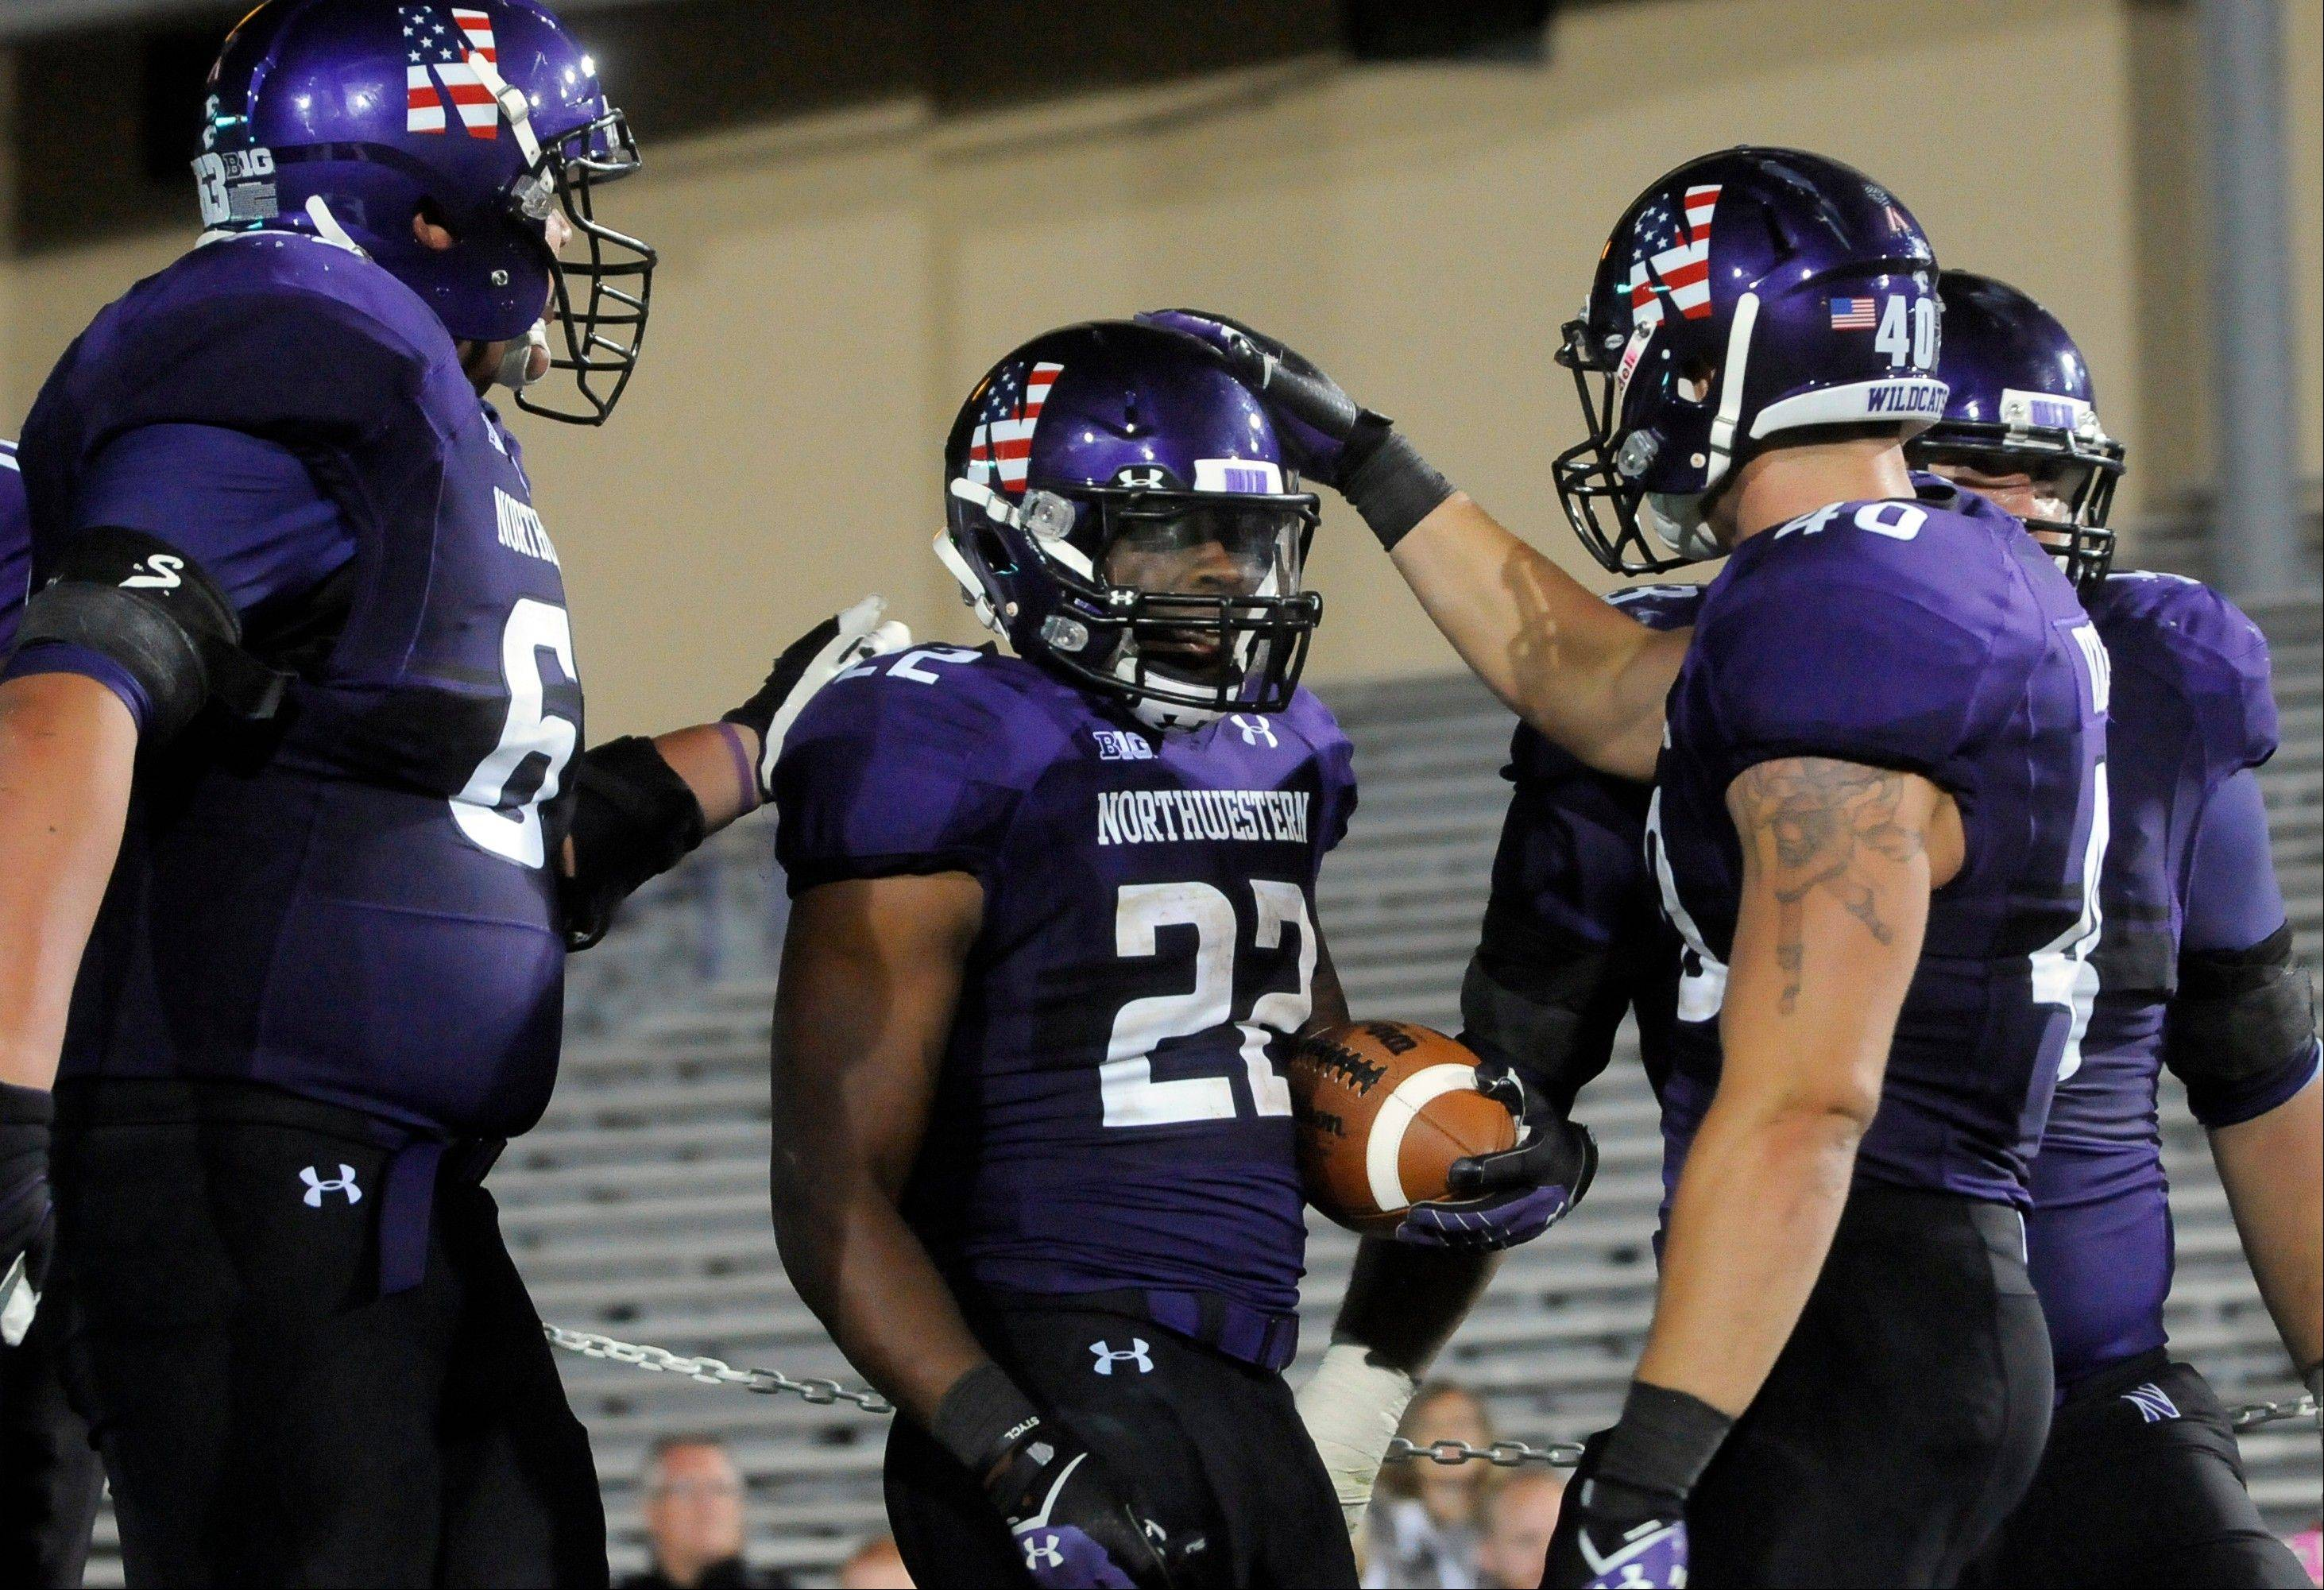 Northwestern's Treyvon Green (22) celebrates his touchdown against Western Michigan with teammates Ian Park (63) Dan Vitale (40) and Geoff Mogus (53)during the fourth quarter of an NCAA college football game in Evanston, Ill., Saturday, Sept. 14, 2013. (AP Photo/Matt Marton)